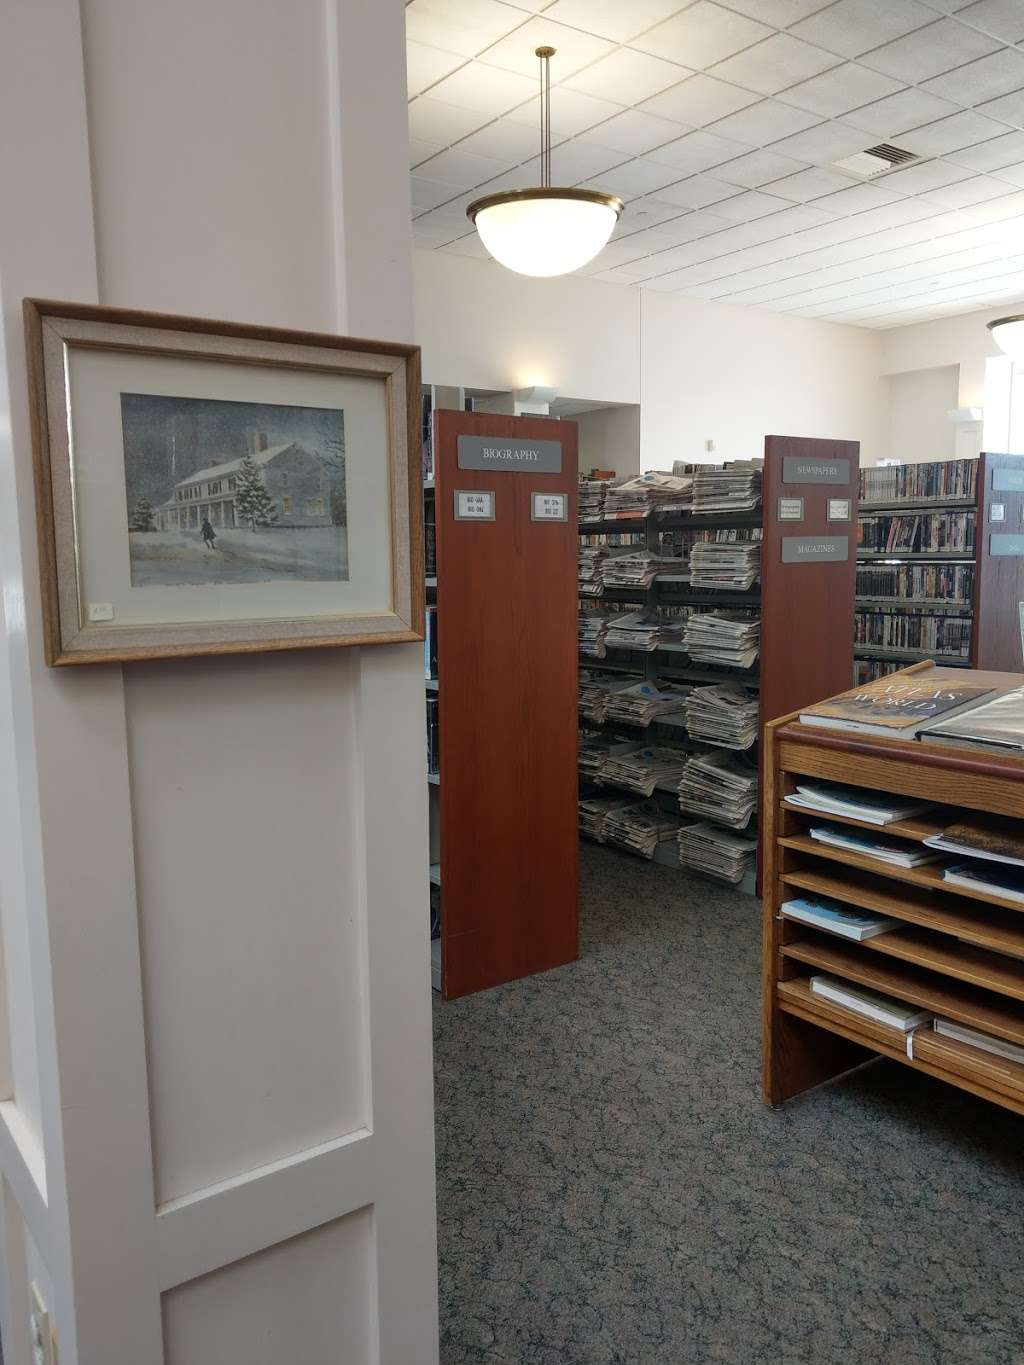 Leach Public Library - library  | Photo 5 of 10 | Address: 276 Mammoth Rd, Londonderry, NH 03053, USA | Phone: (603) 432-1132